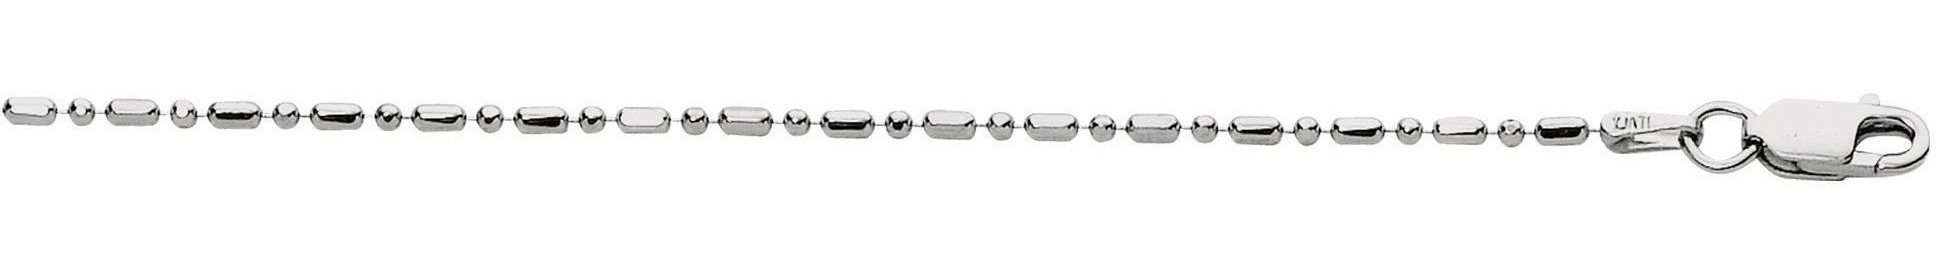 "24"" 1.5mm (0.06"") Rhodium Plated Polished Diamond Cut 925 Sterling Silver Bead & Tube Chain w/ Lobster Clasp"